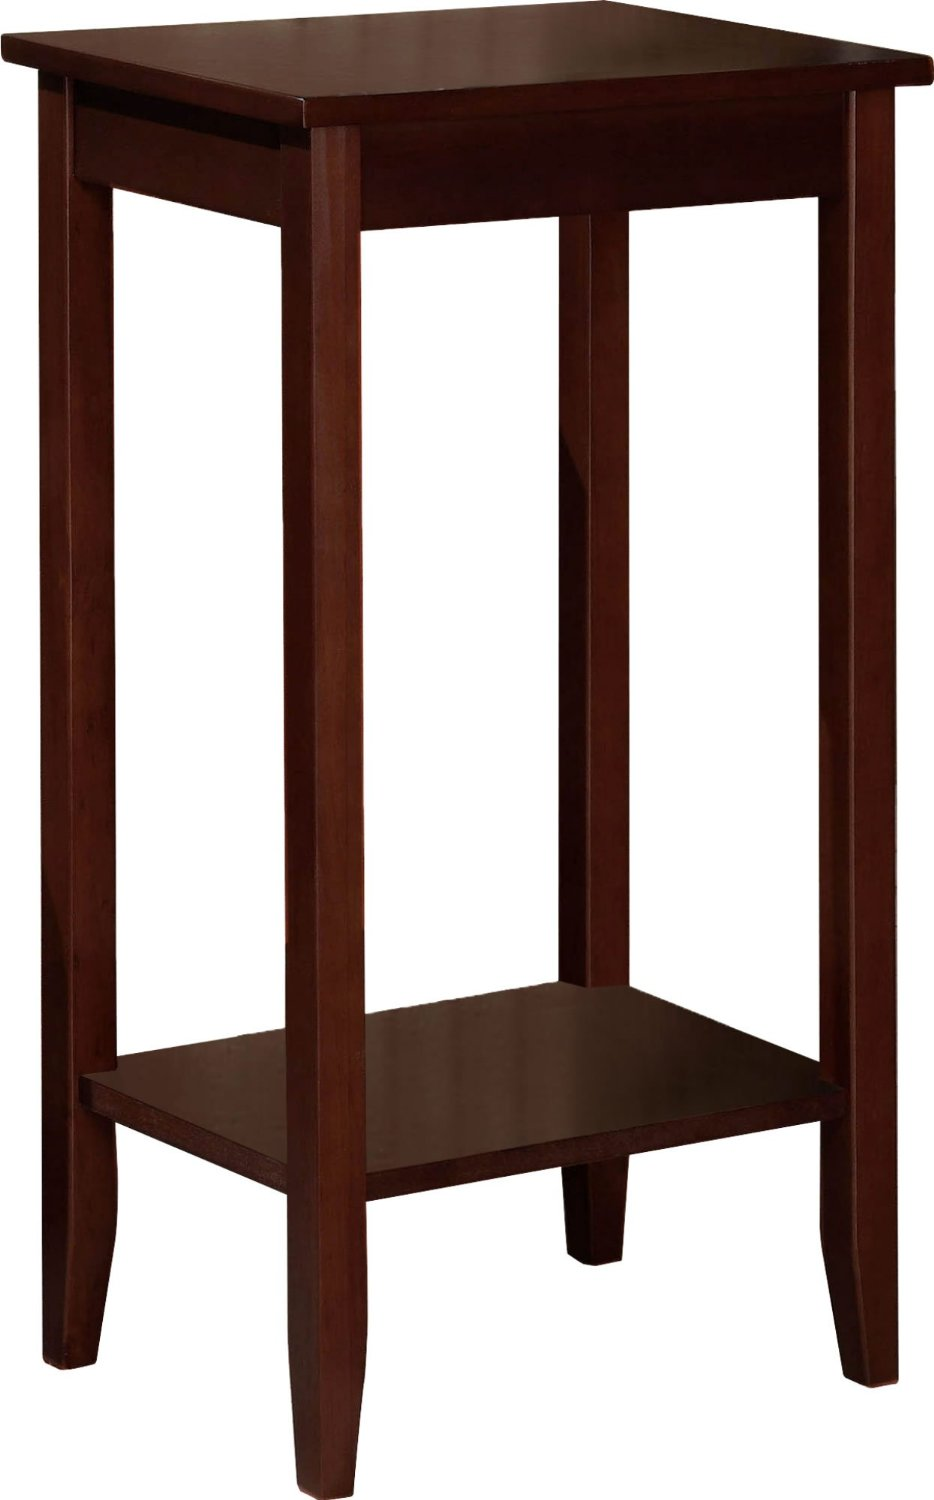 End Table Height Home Furniture Design